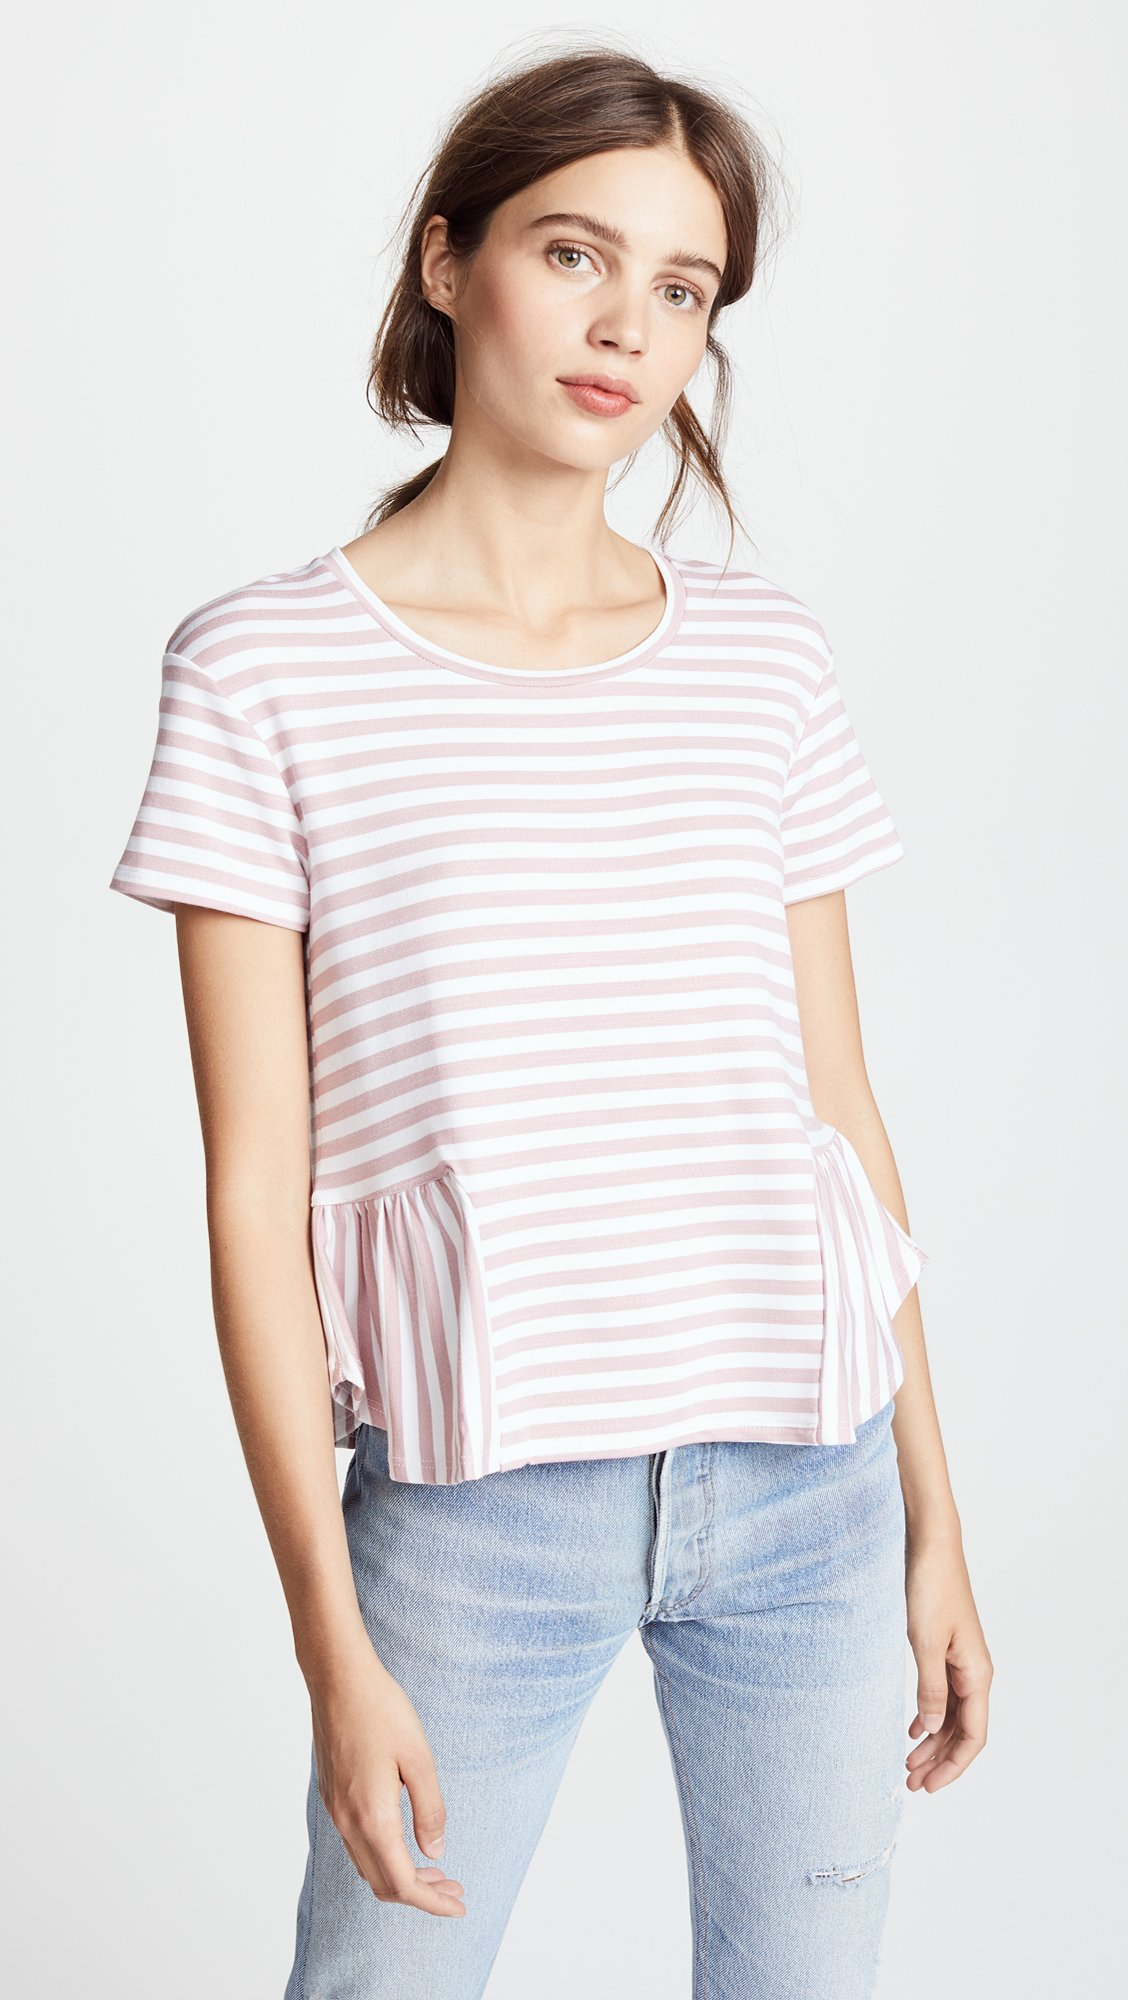 Three Dots Women's Cape Cod Stripe Loose Short Top, Rose/White, Extra Small by Three Dots (Image #2)